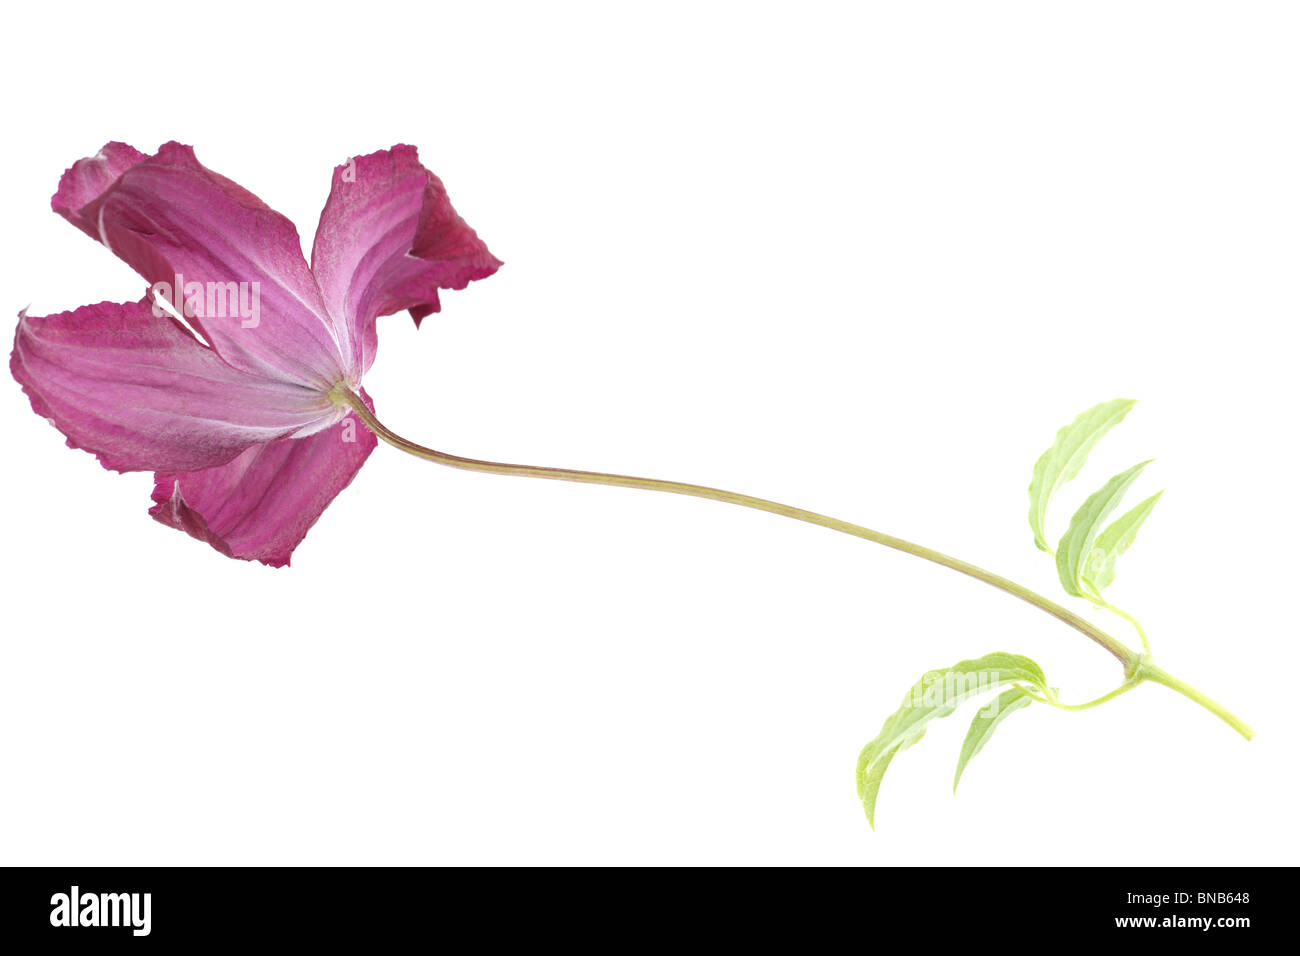 Clematis viticella Madame Julia Correvon a flowerhead stem and leaves - Stock Image